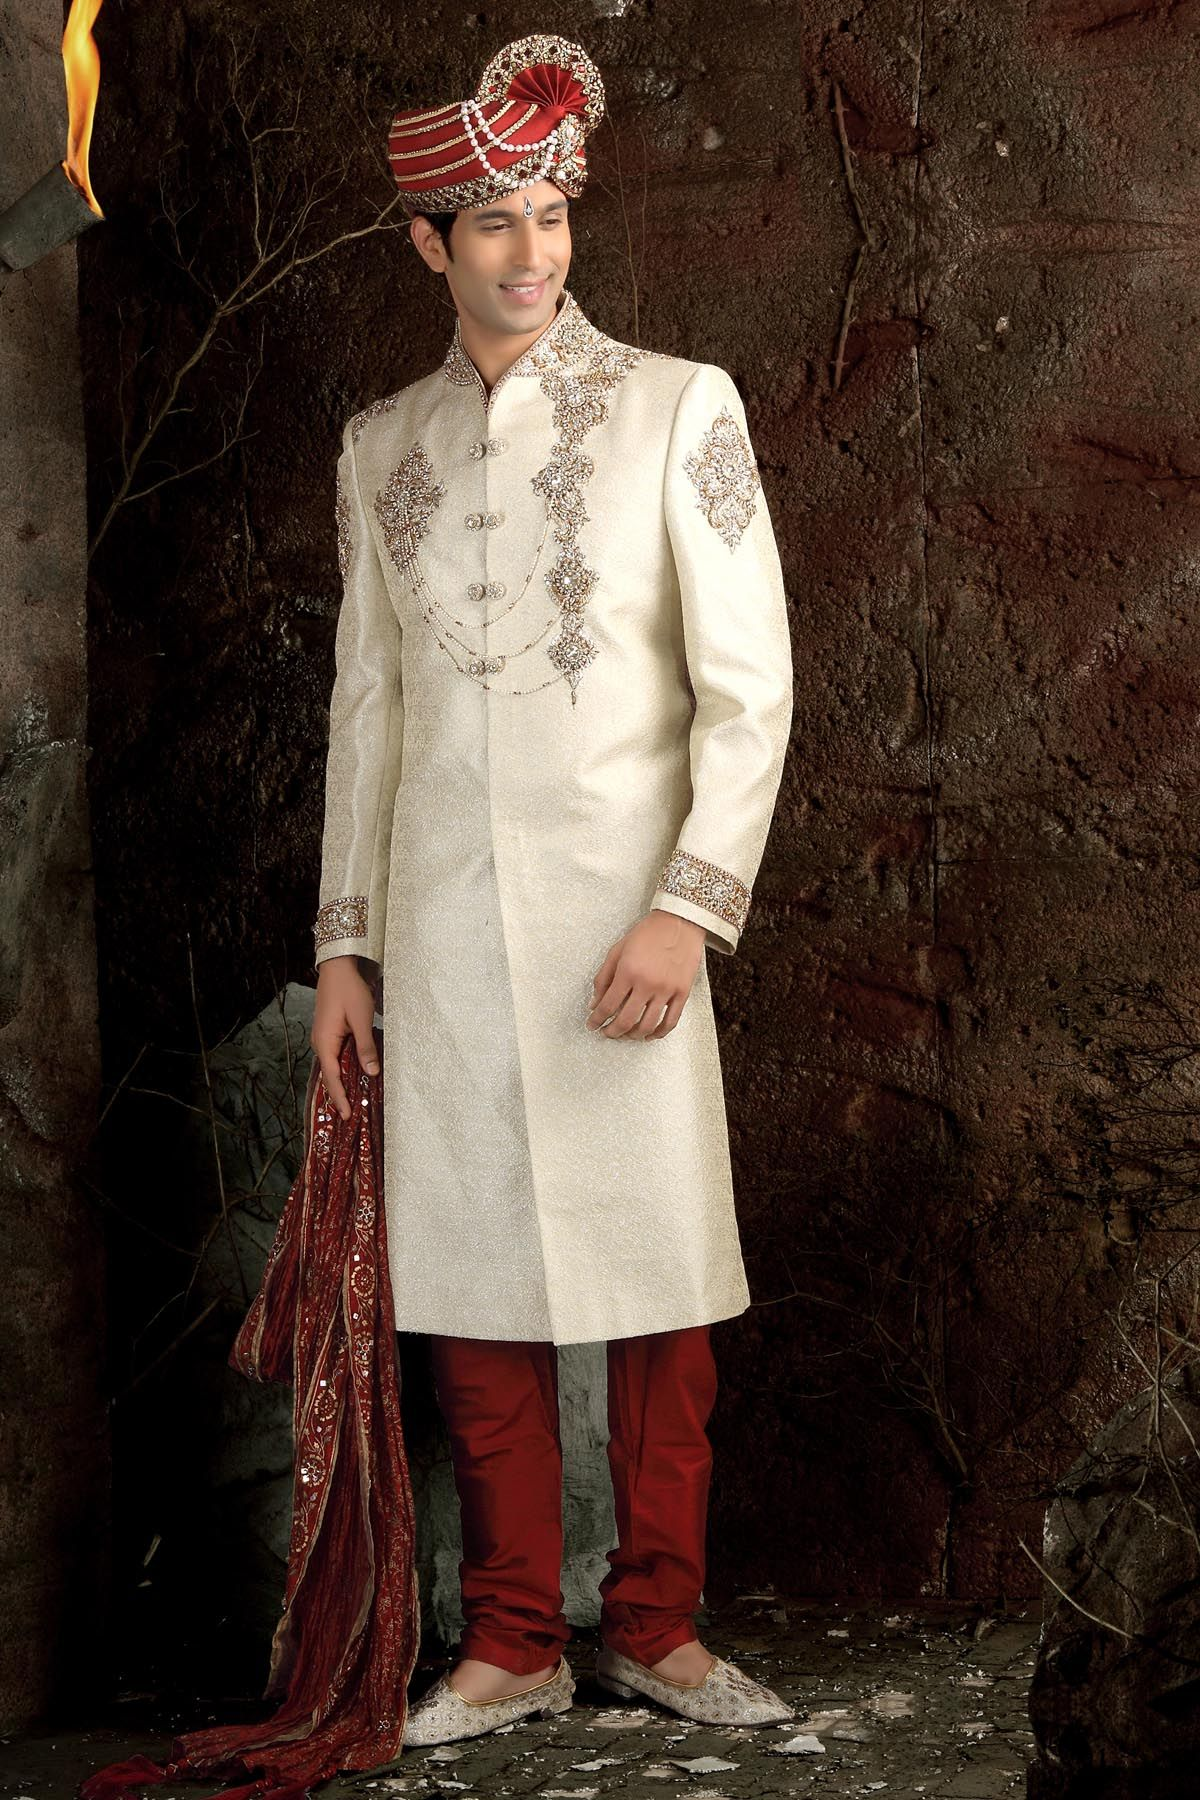 Indian wedding dress for men indian wedding dressmen for Dress and jacket outfits for weddings